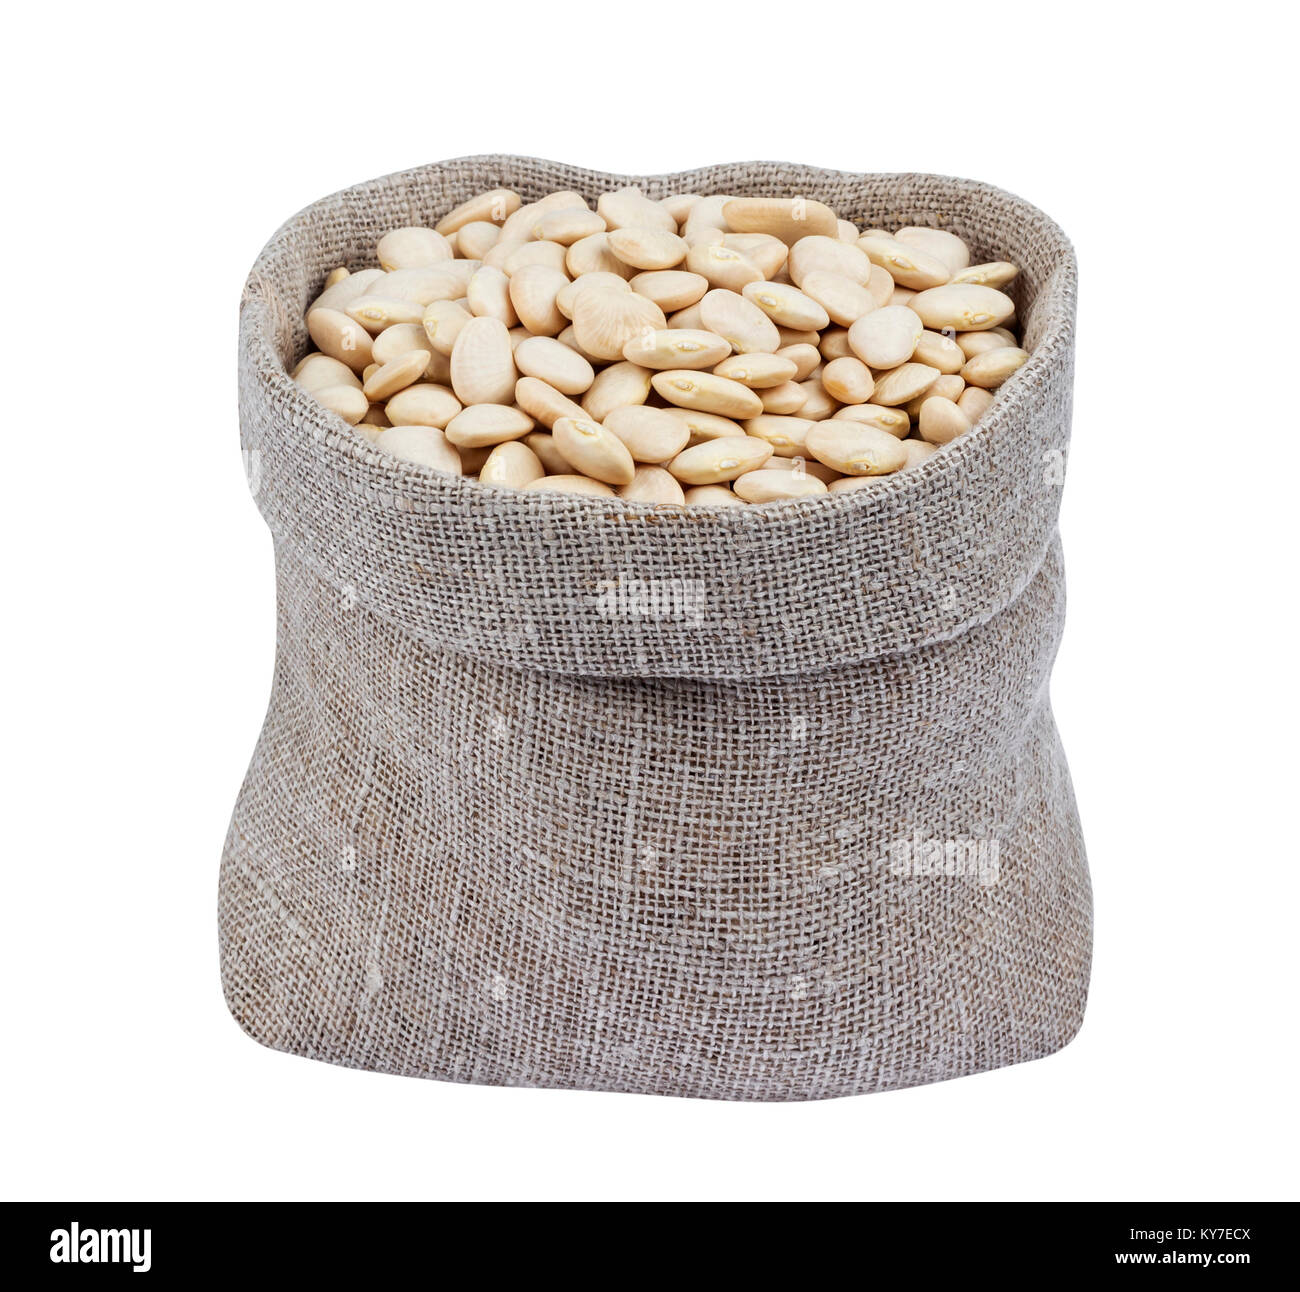 White kidney beans in bag isolated on white - Stock Image